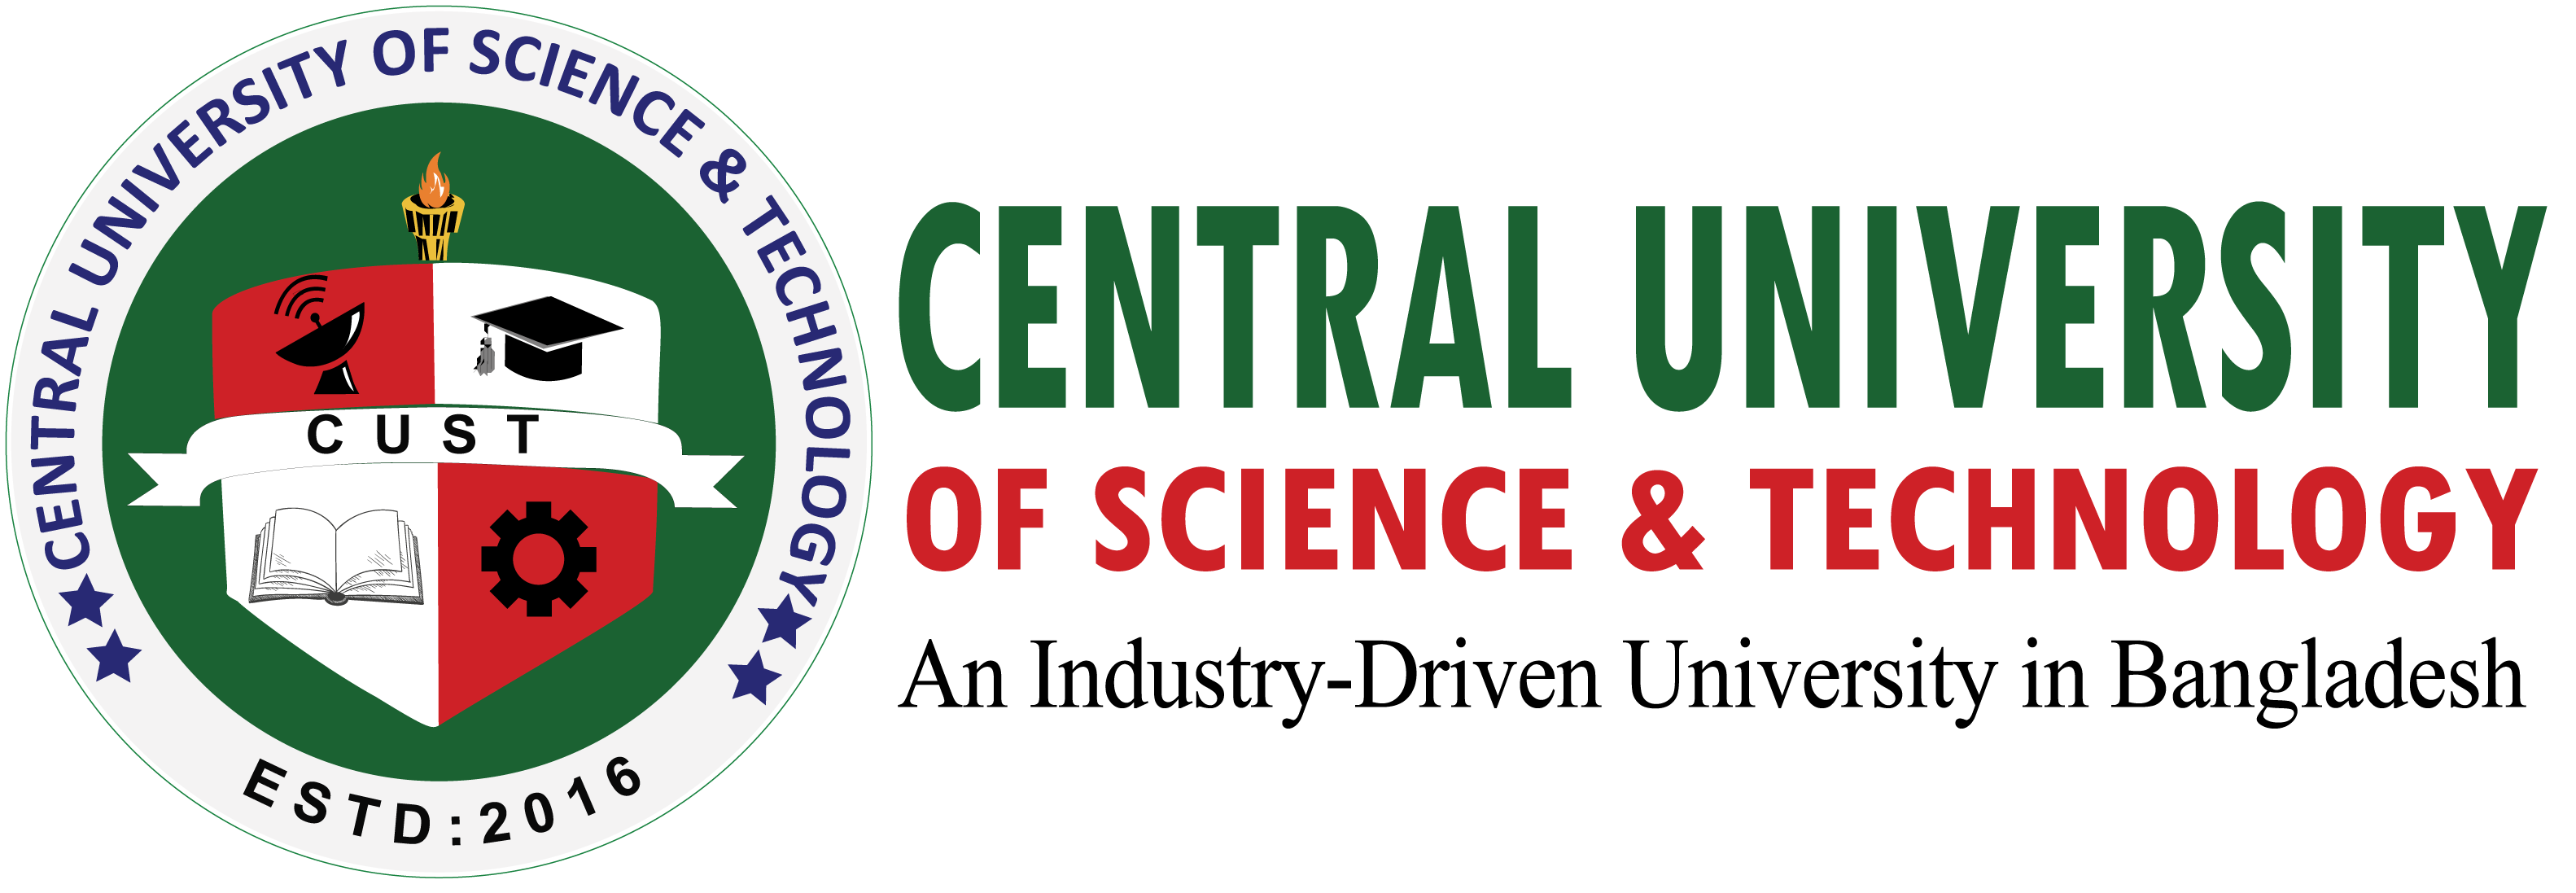 Admission Open, Spring (Swadhinata) 2019 - Central University of Science and Technology